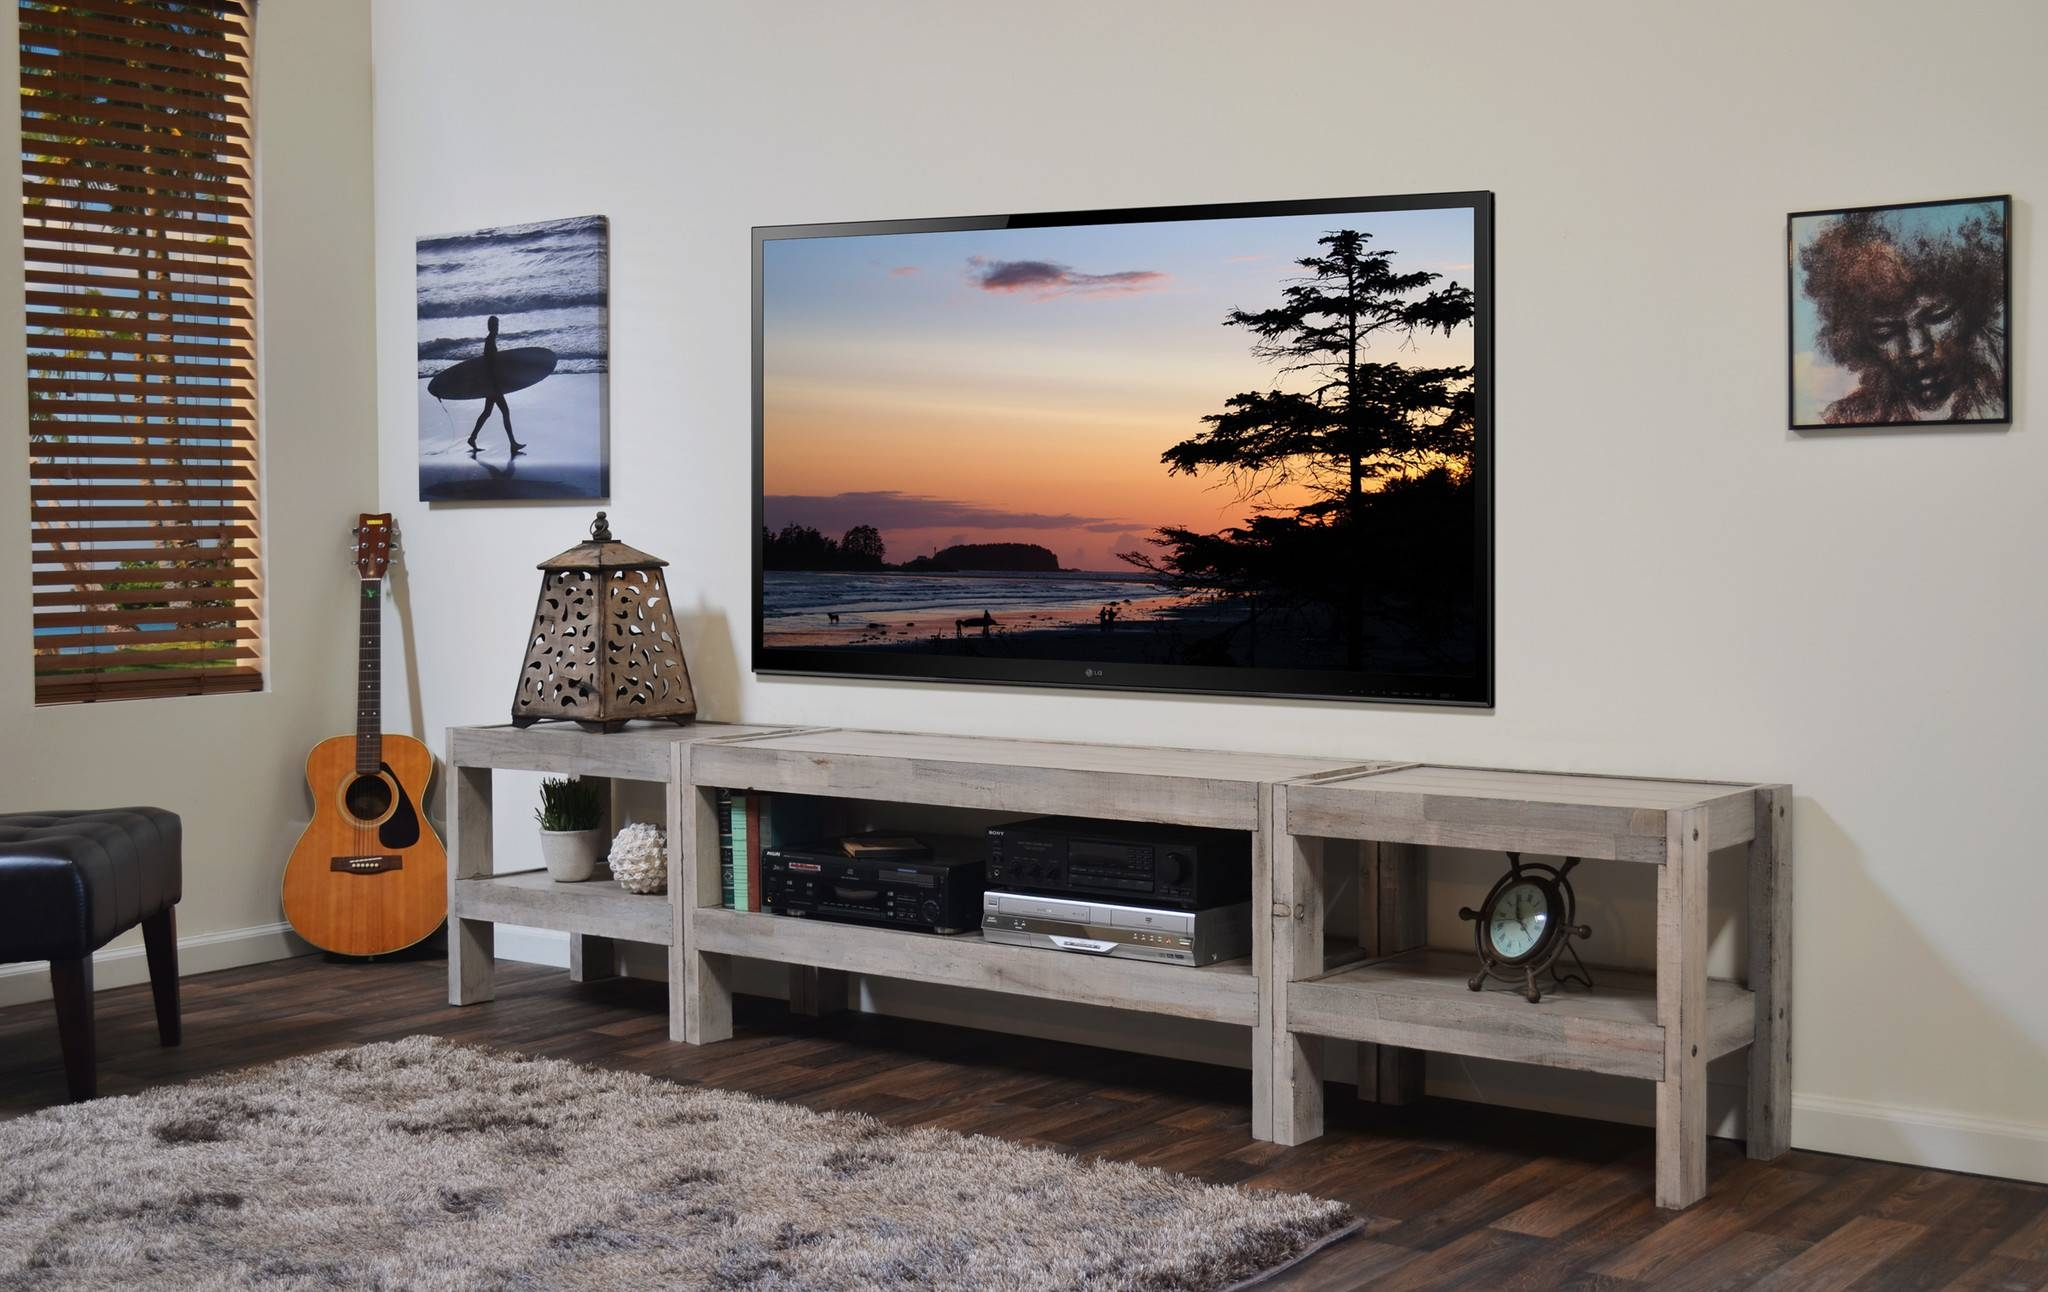 Entertainment Center Tv Stand | Home Design Ideas inside Entertainment Center Tv Stands (Image 2 of 15)